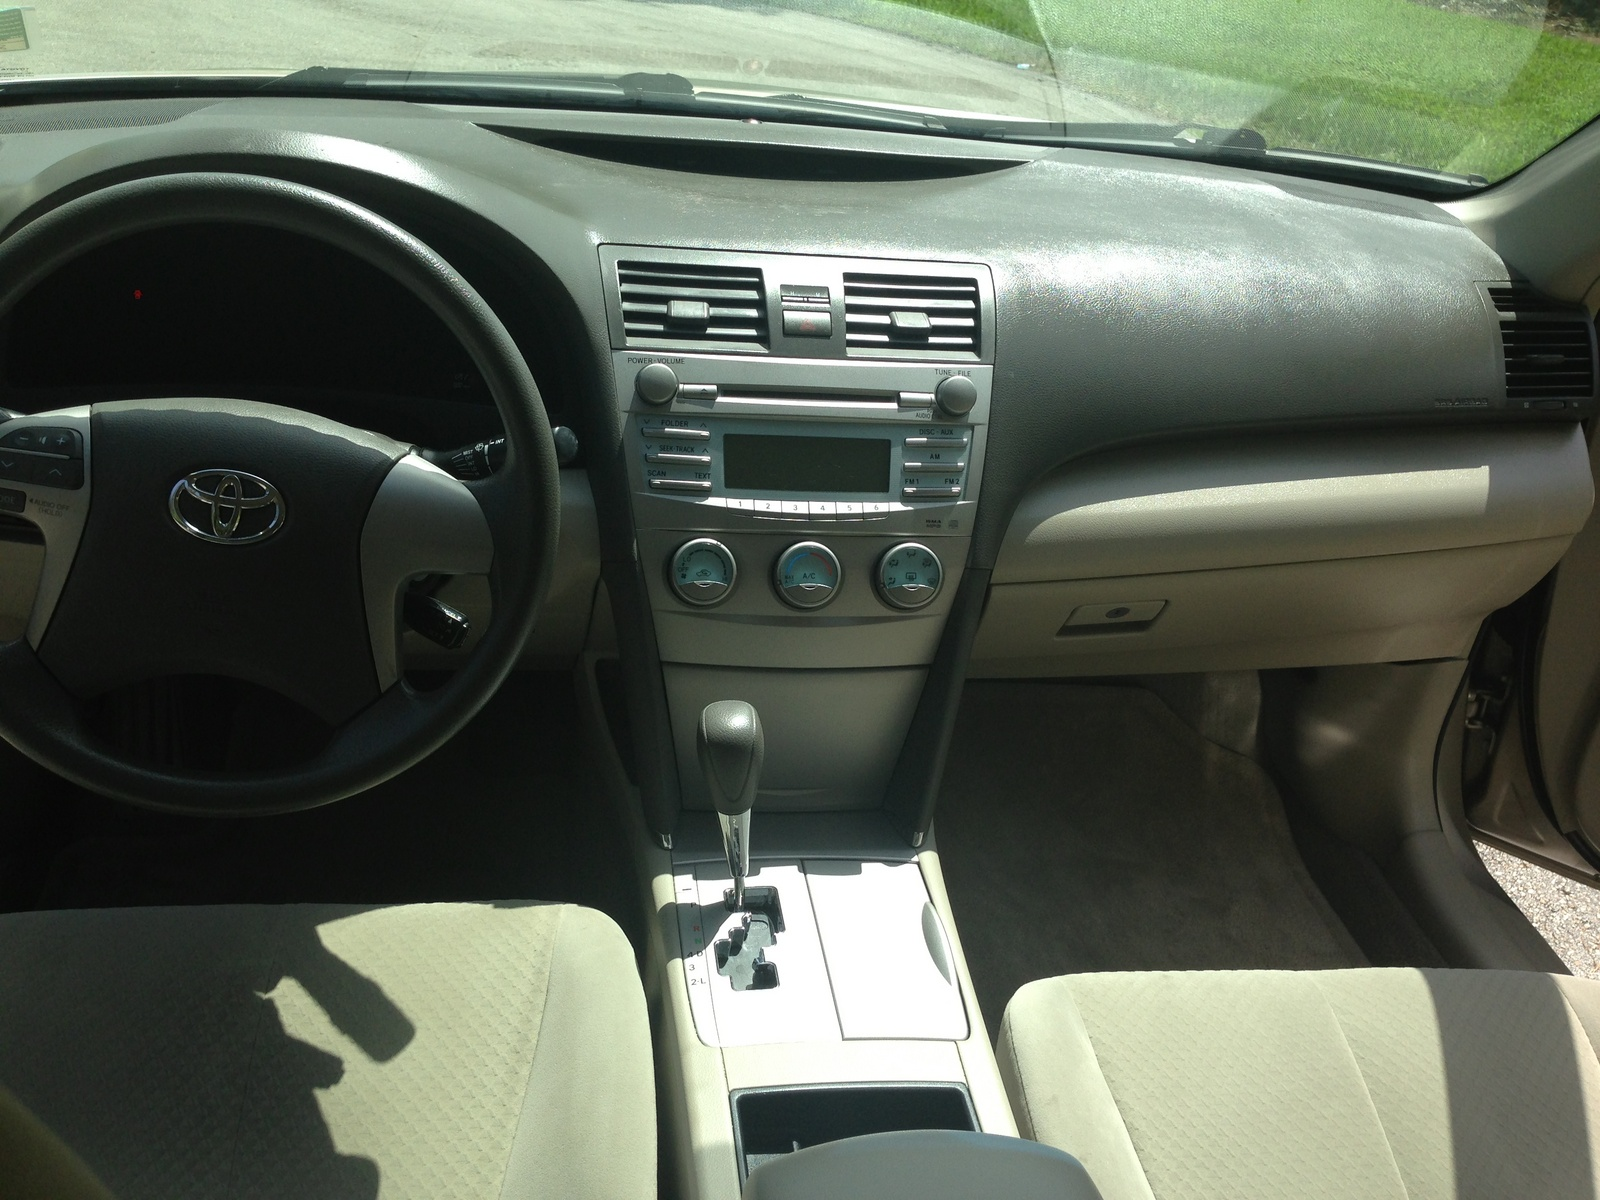 2009 Toyota Camry Le Interior Pictures To Pin On Pinterest Pinsdaddy